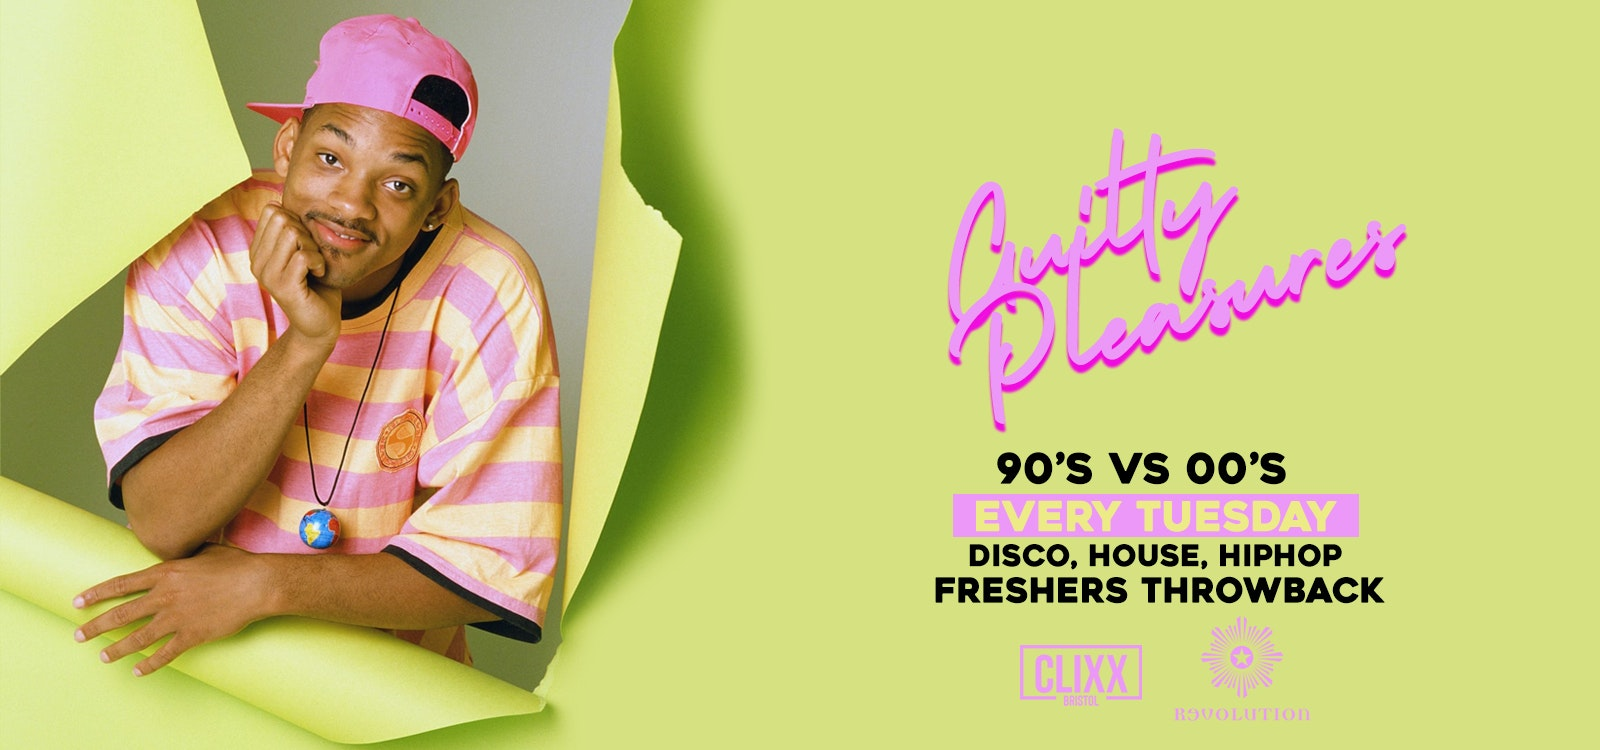 Guilty Pleasures 90's VS 00's – The Ultimate Freshers Throwback Party  – SOLD OUT – 200 SPACES ON THE DOOR